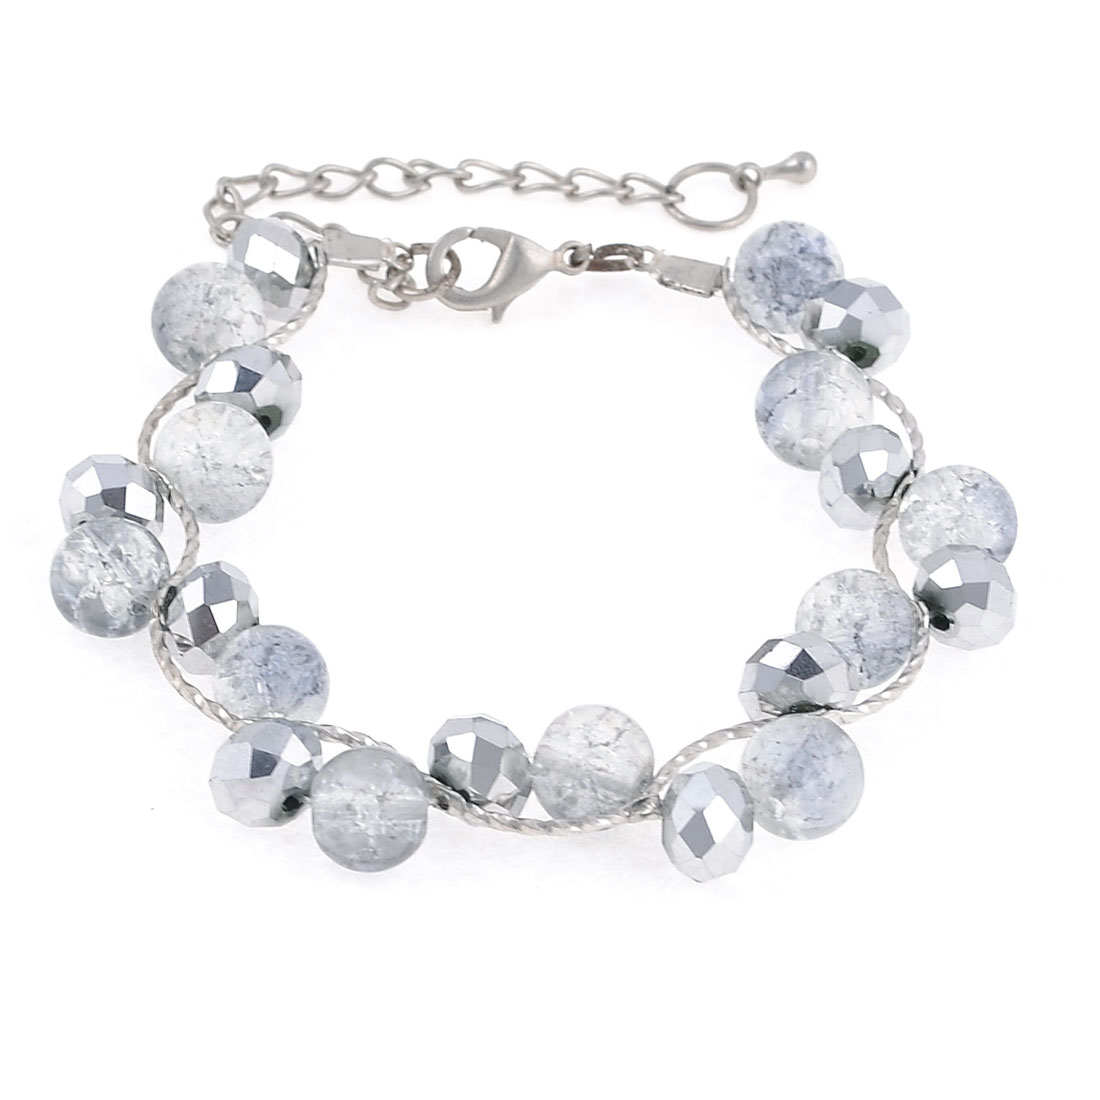 Silver Tone Metal Lobster Hook Faceted Crystal Decor Bracelet for Women